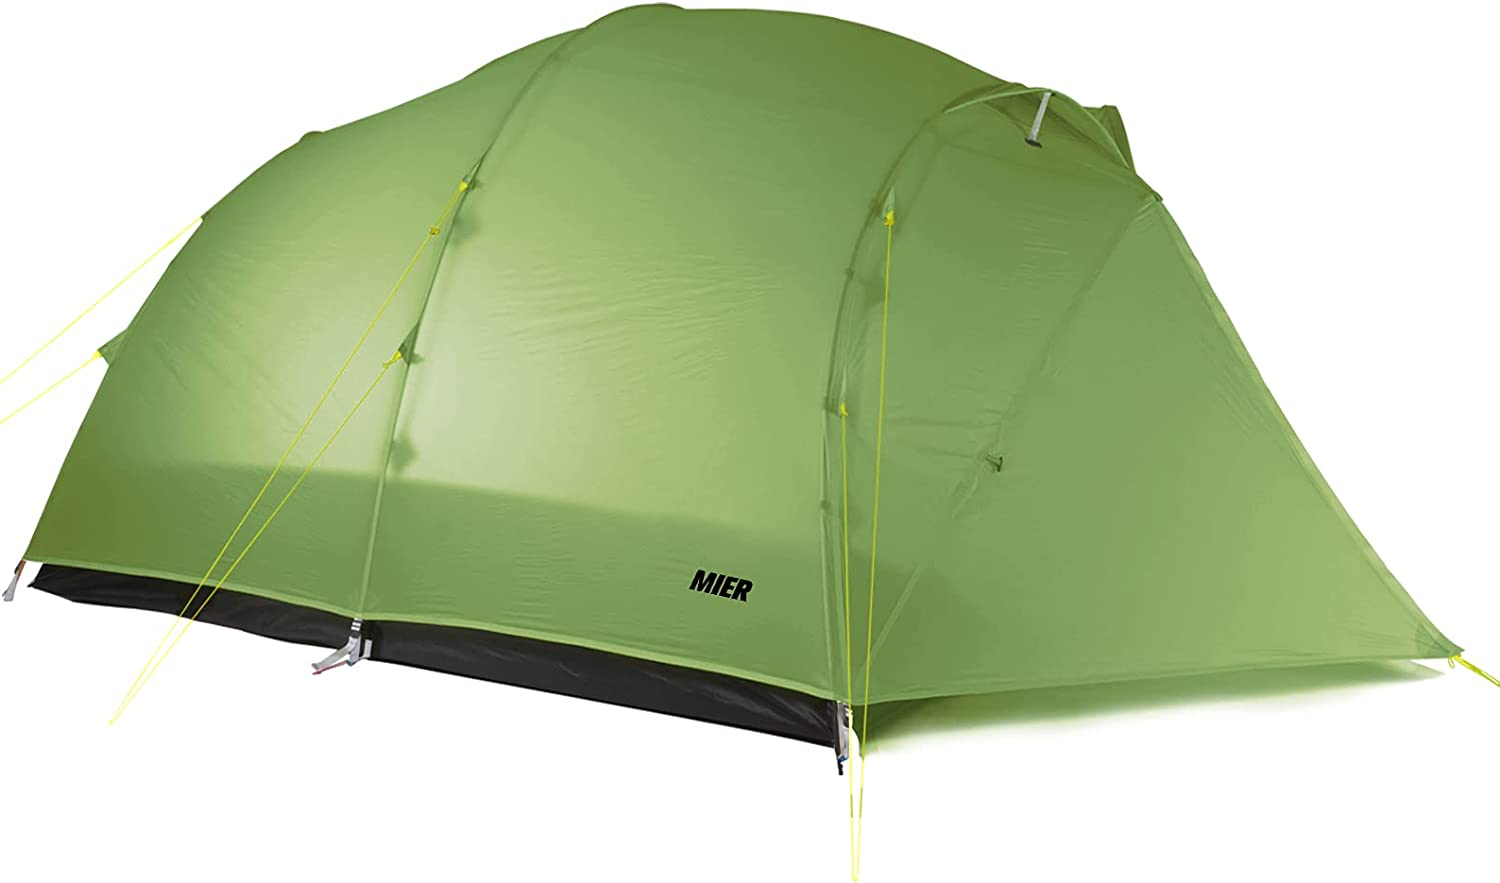 Long Beach Mall MIER Ultralight Waterproof Max 78% OFF Backpacking Tent 3-Person or for 4-Pe